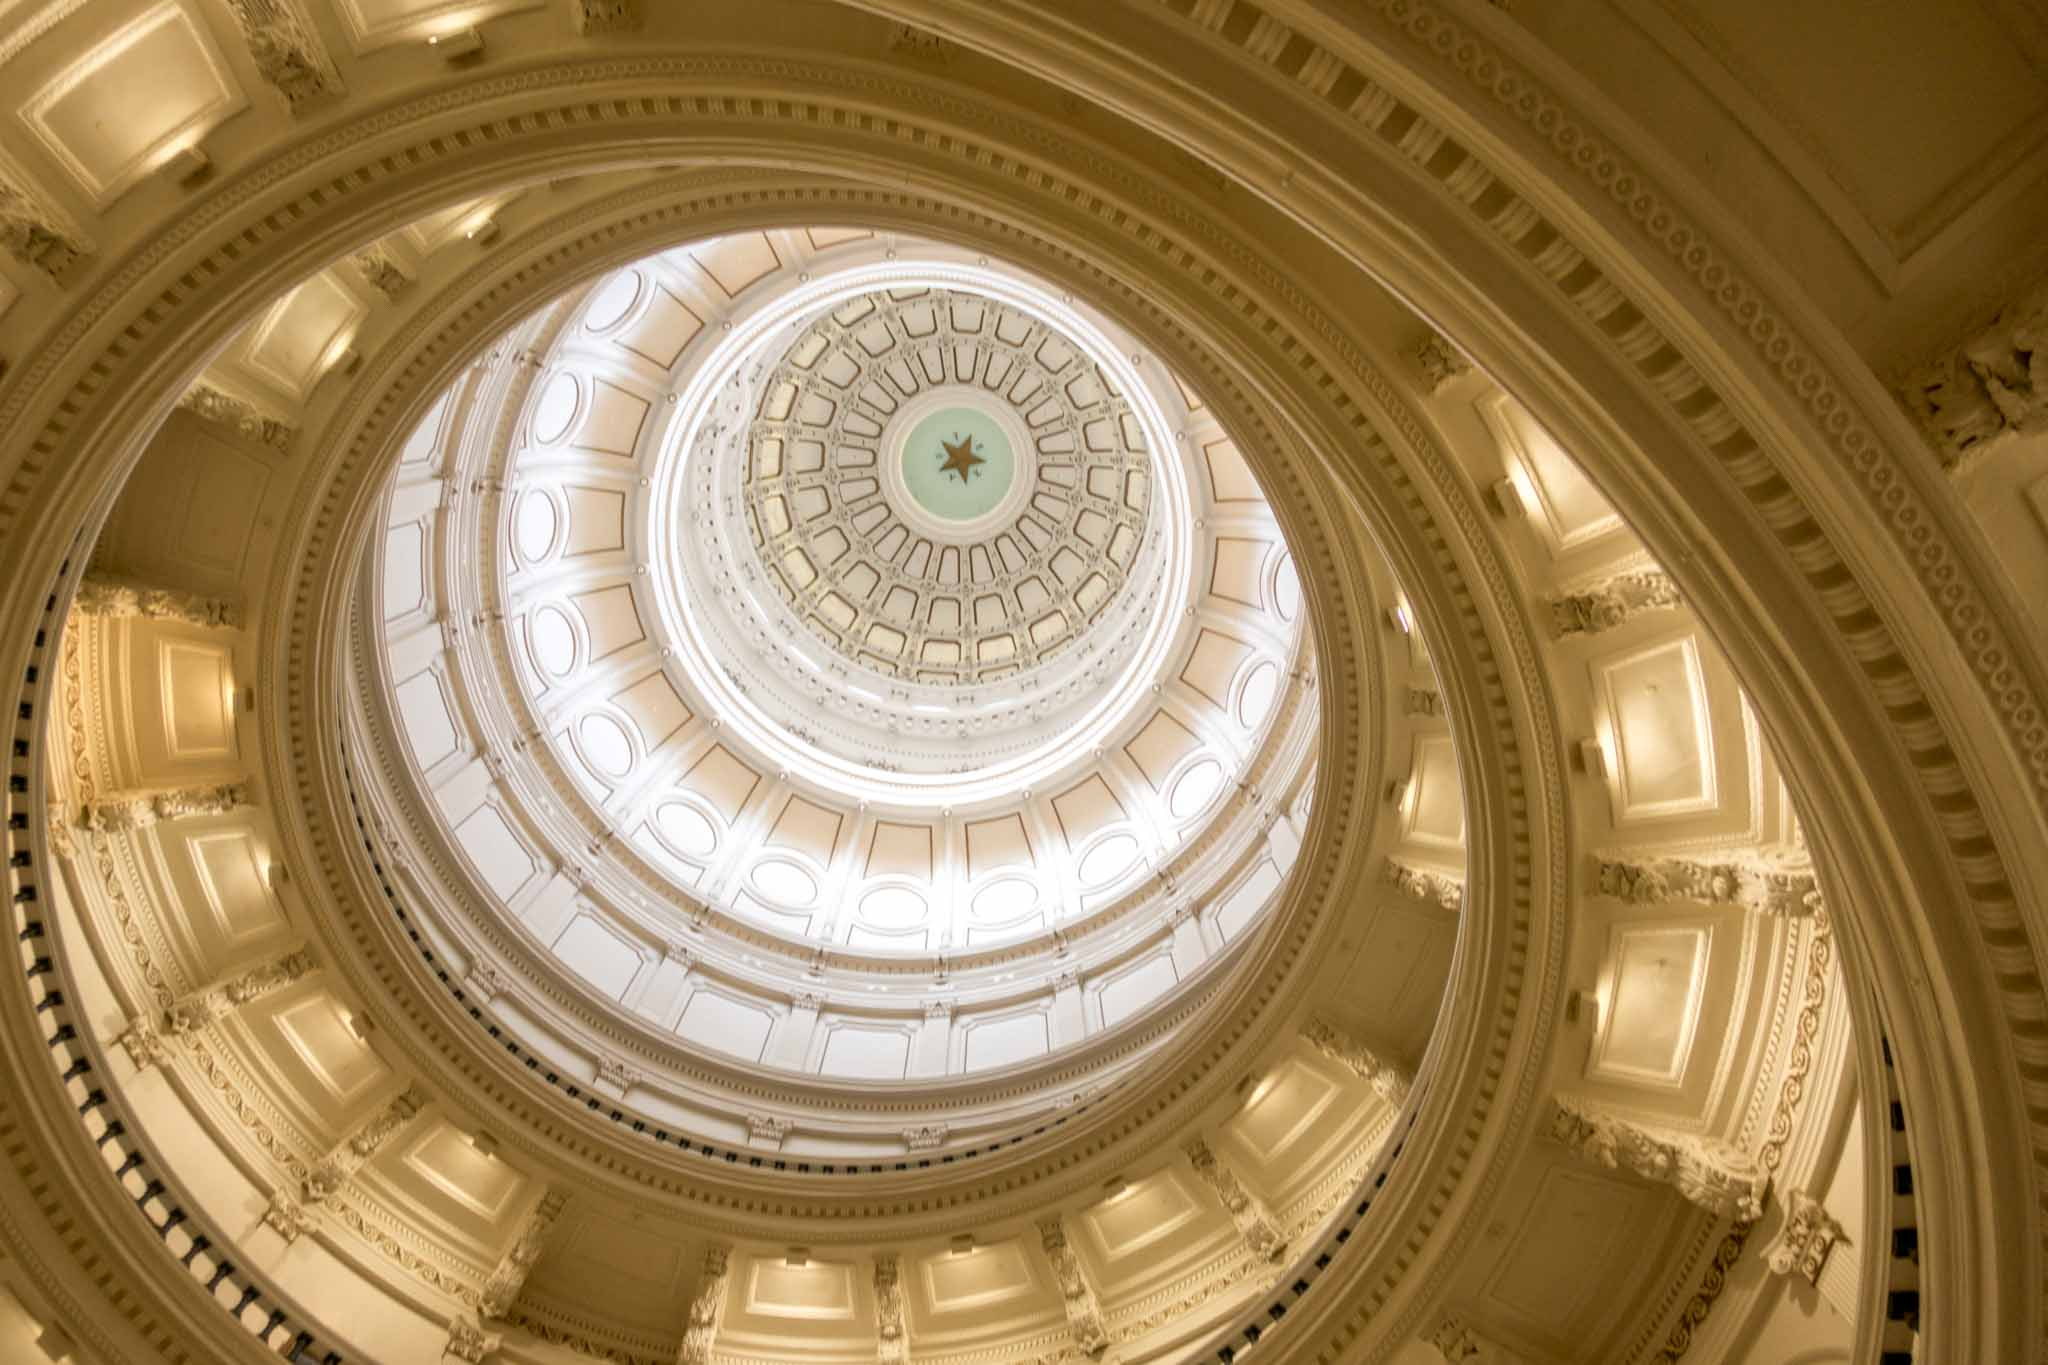 Circular pattern inside the dome of the Texas State Capitol building in Austin TX